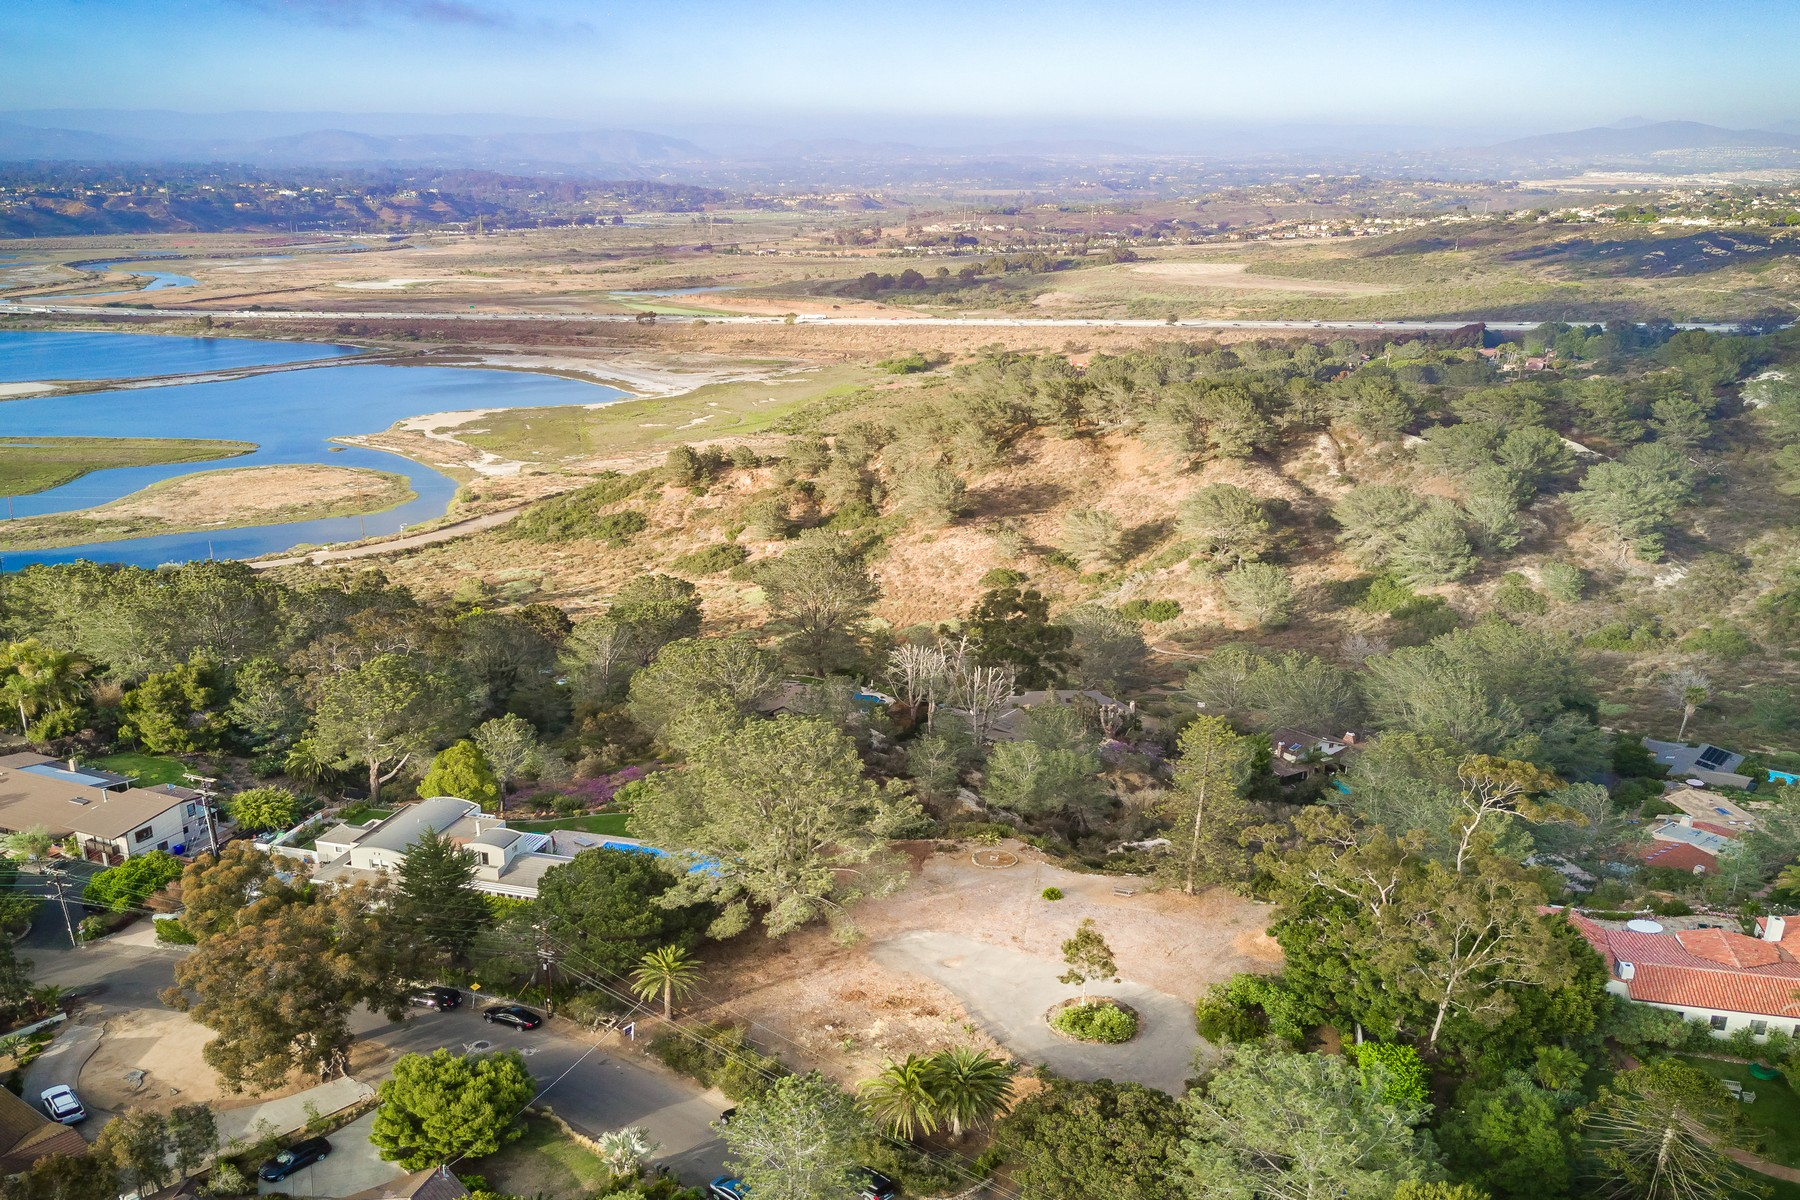 Land for Sale at 1305 Crest Road 1 1305 Crest Road, 1 Del Mar, California 92014 United States